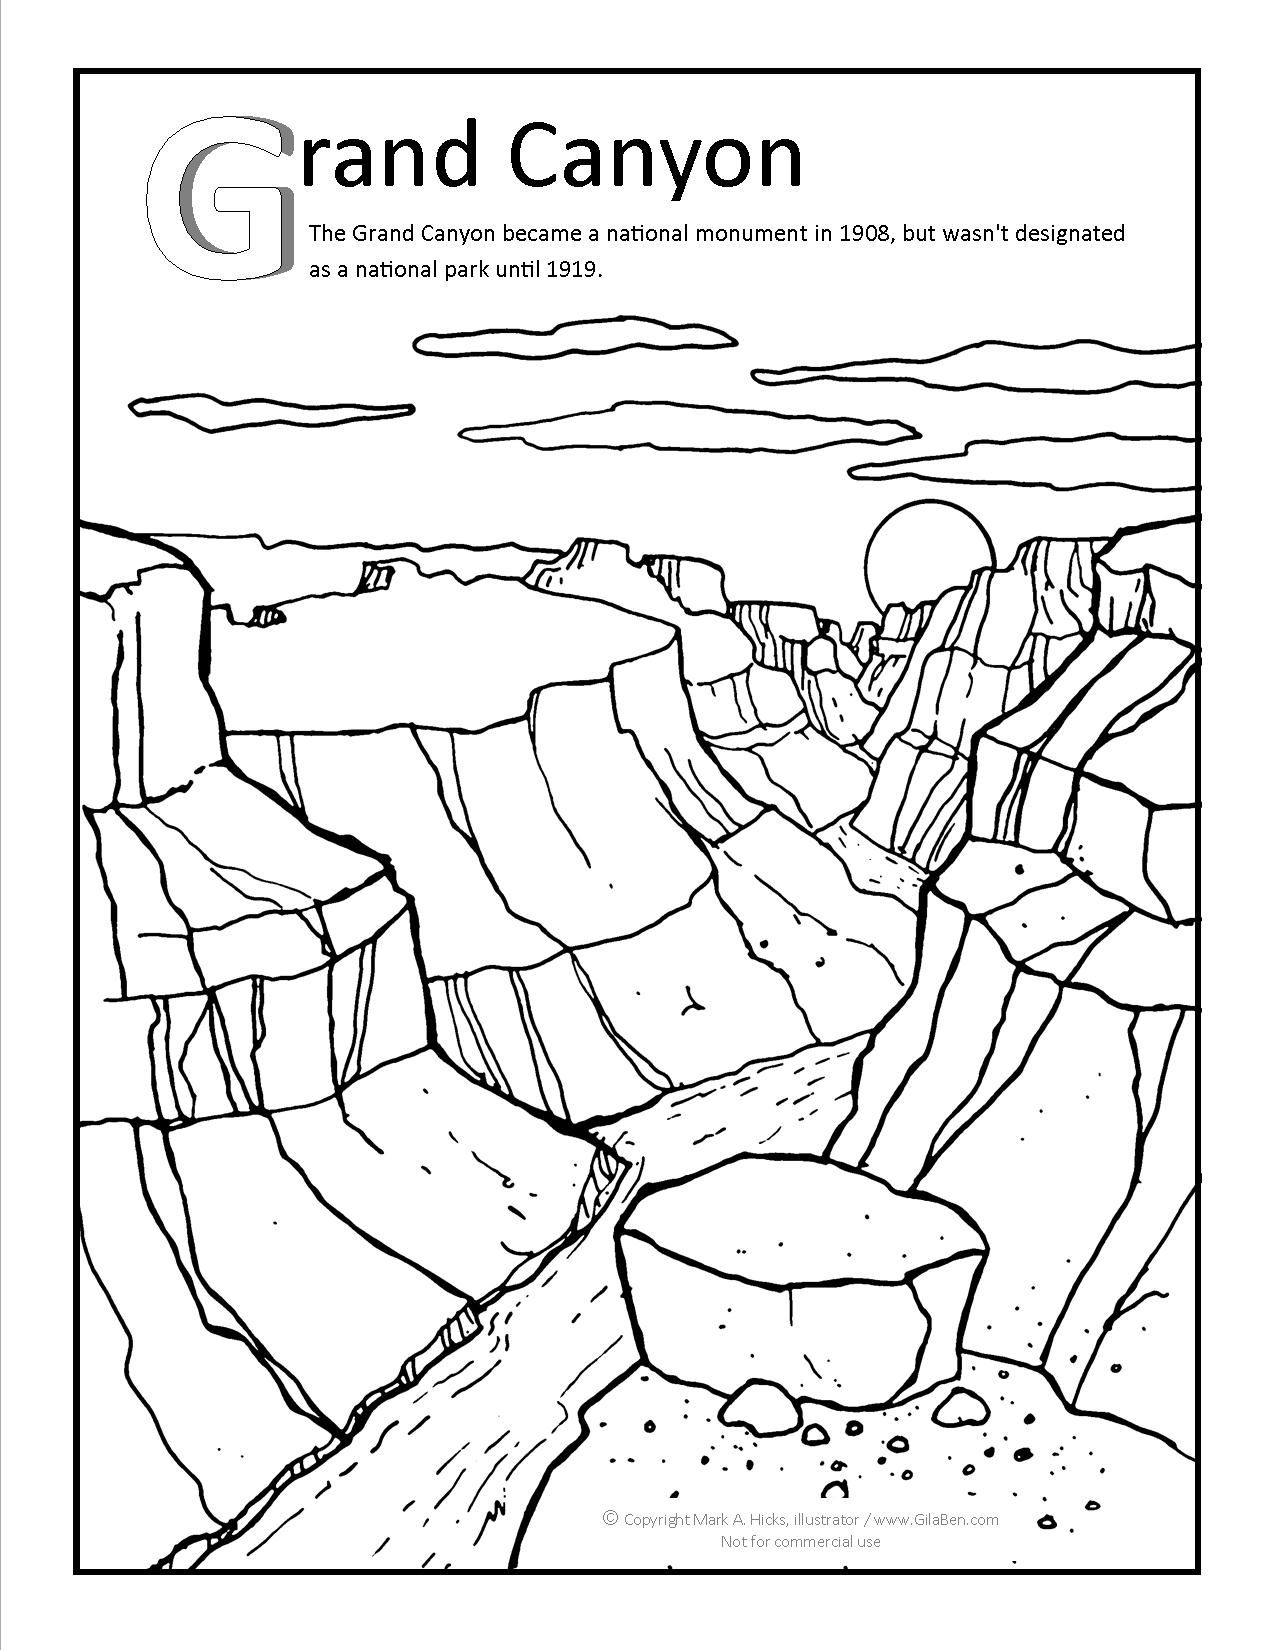 Grand Canyon Coloring Page At Gilaben Com Grand Canyon